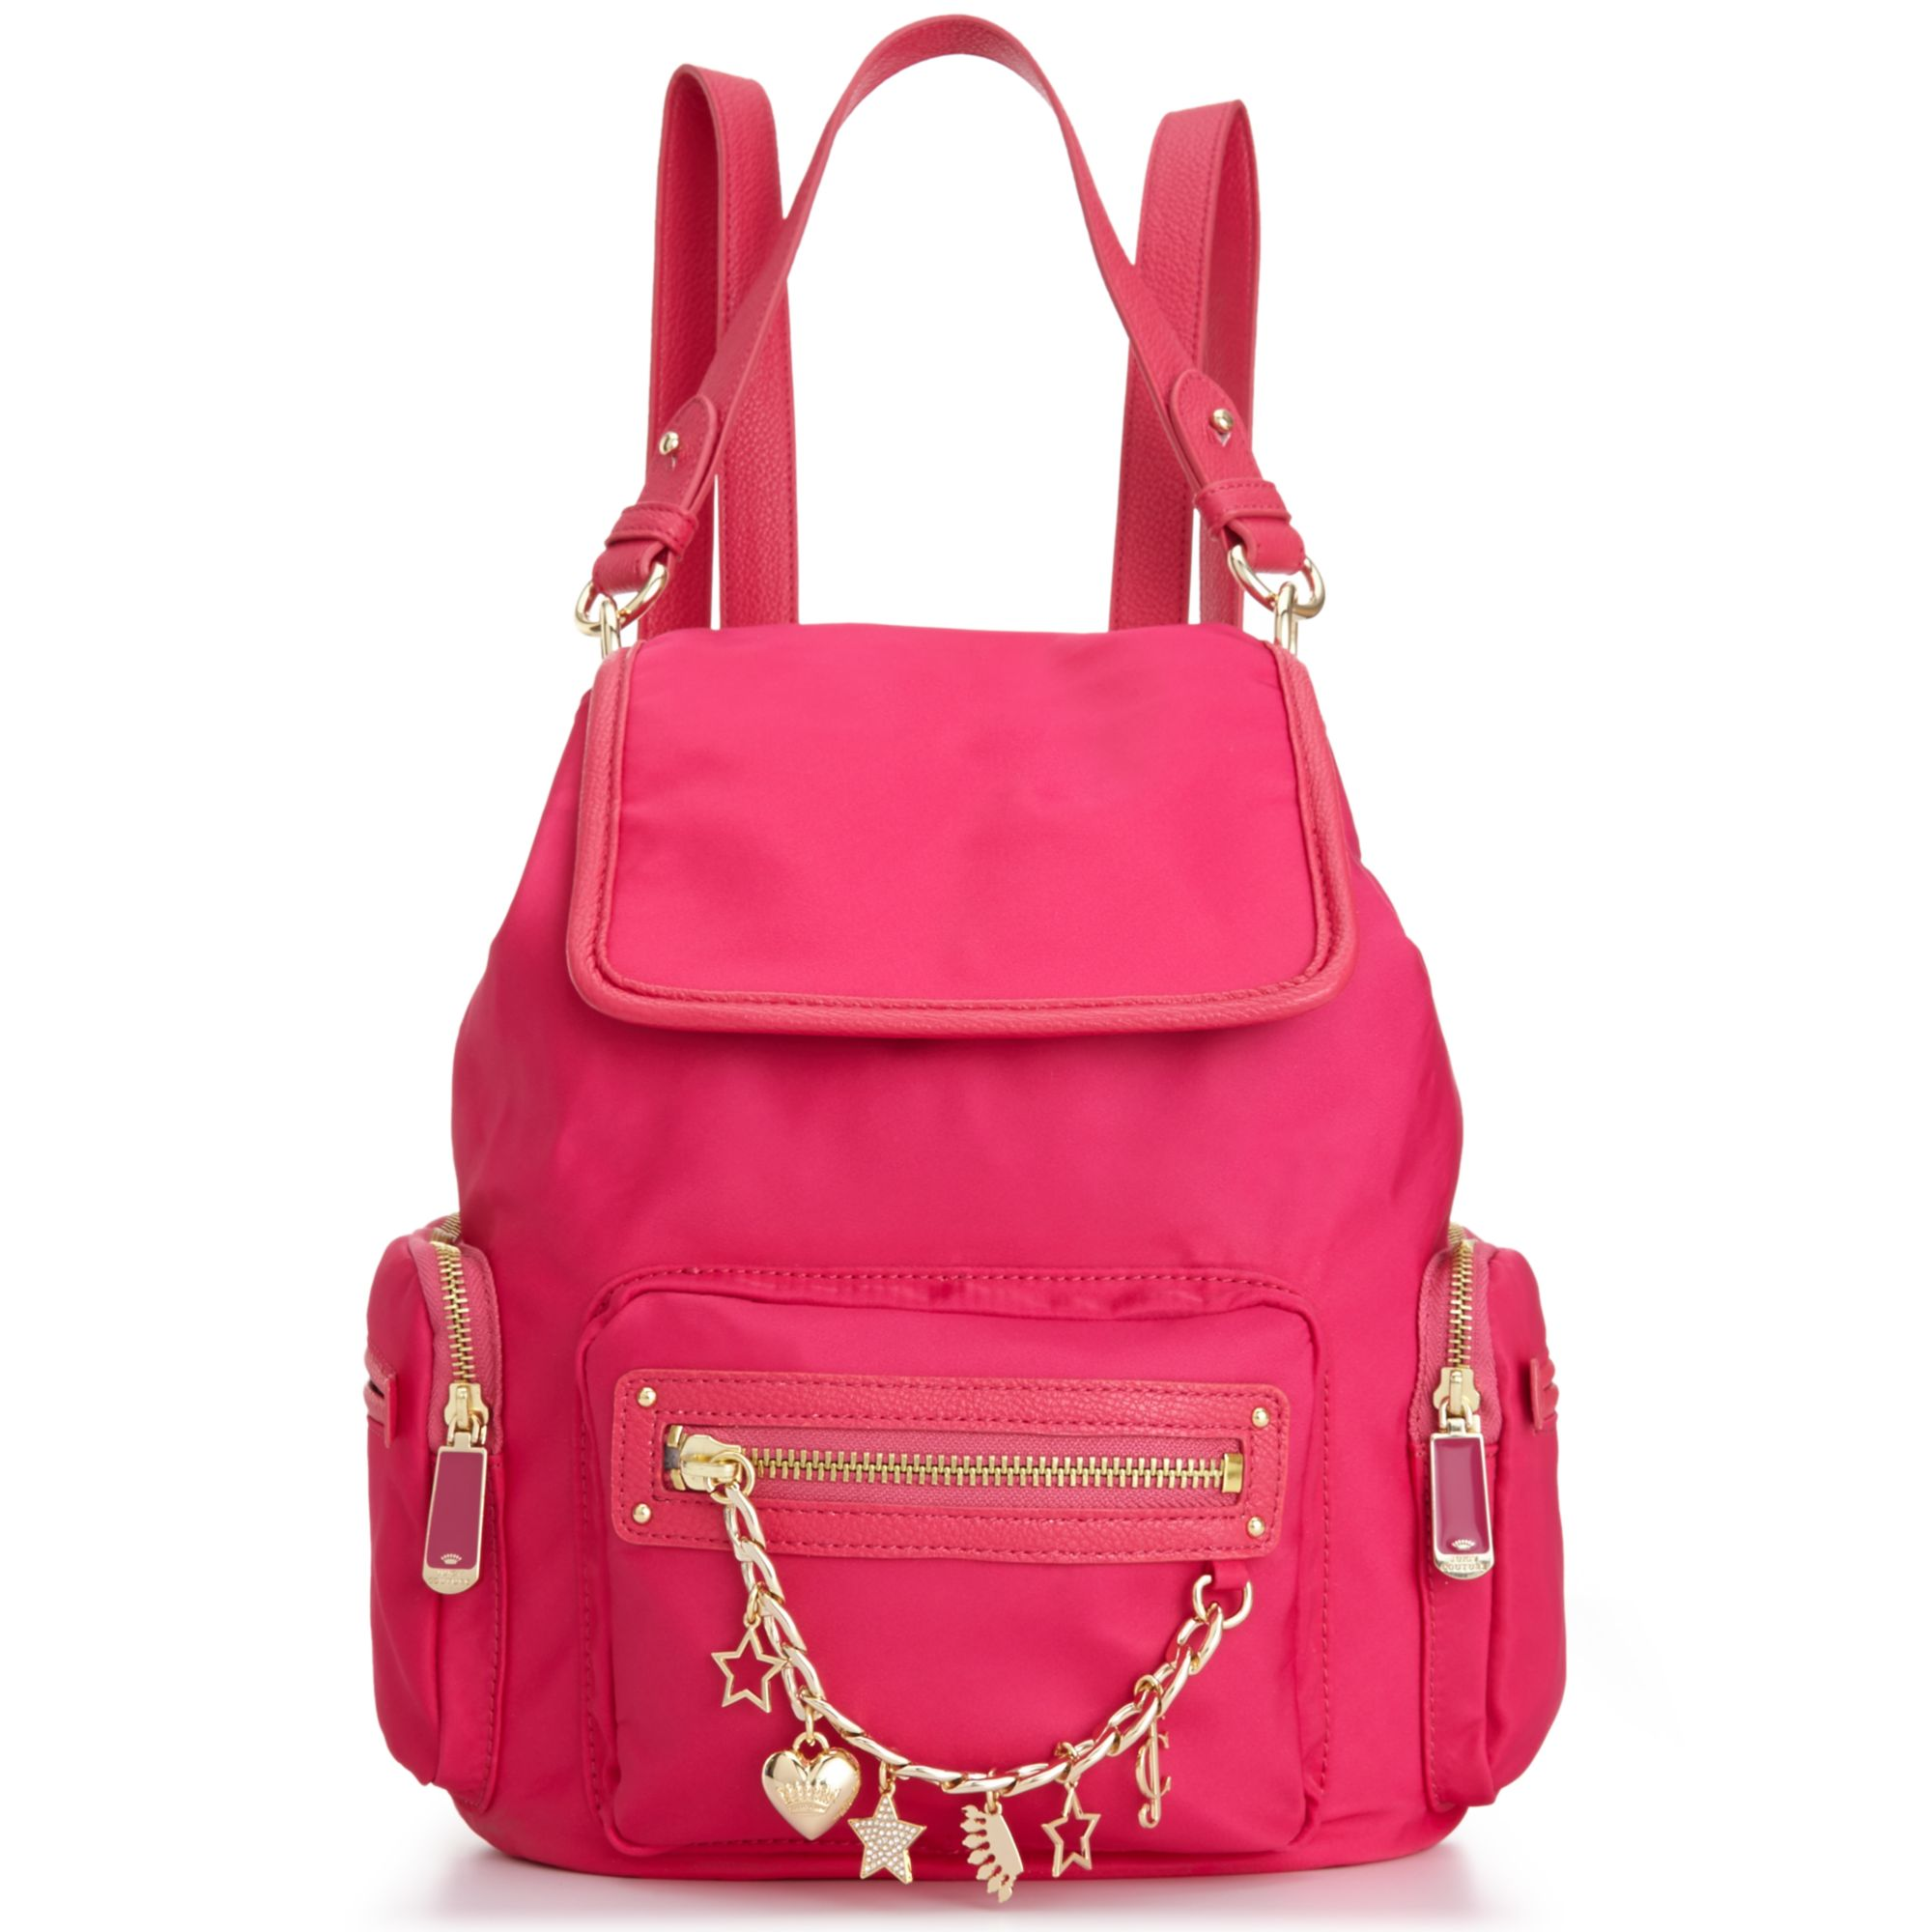 Juicy Couture Brentwood Nylon Backpack In Pink Lyst